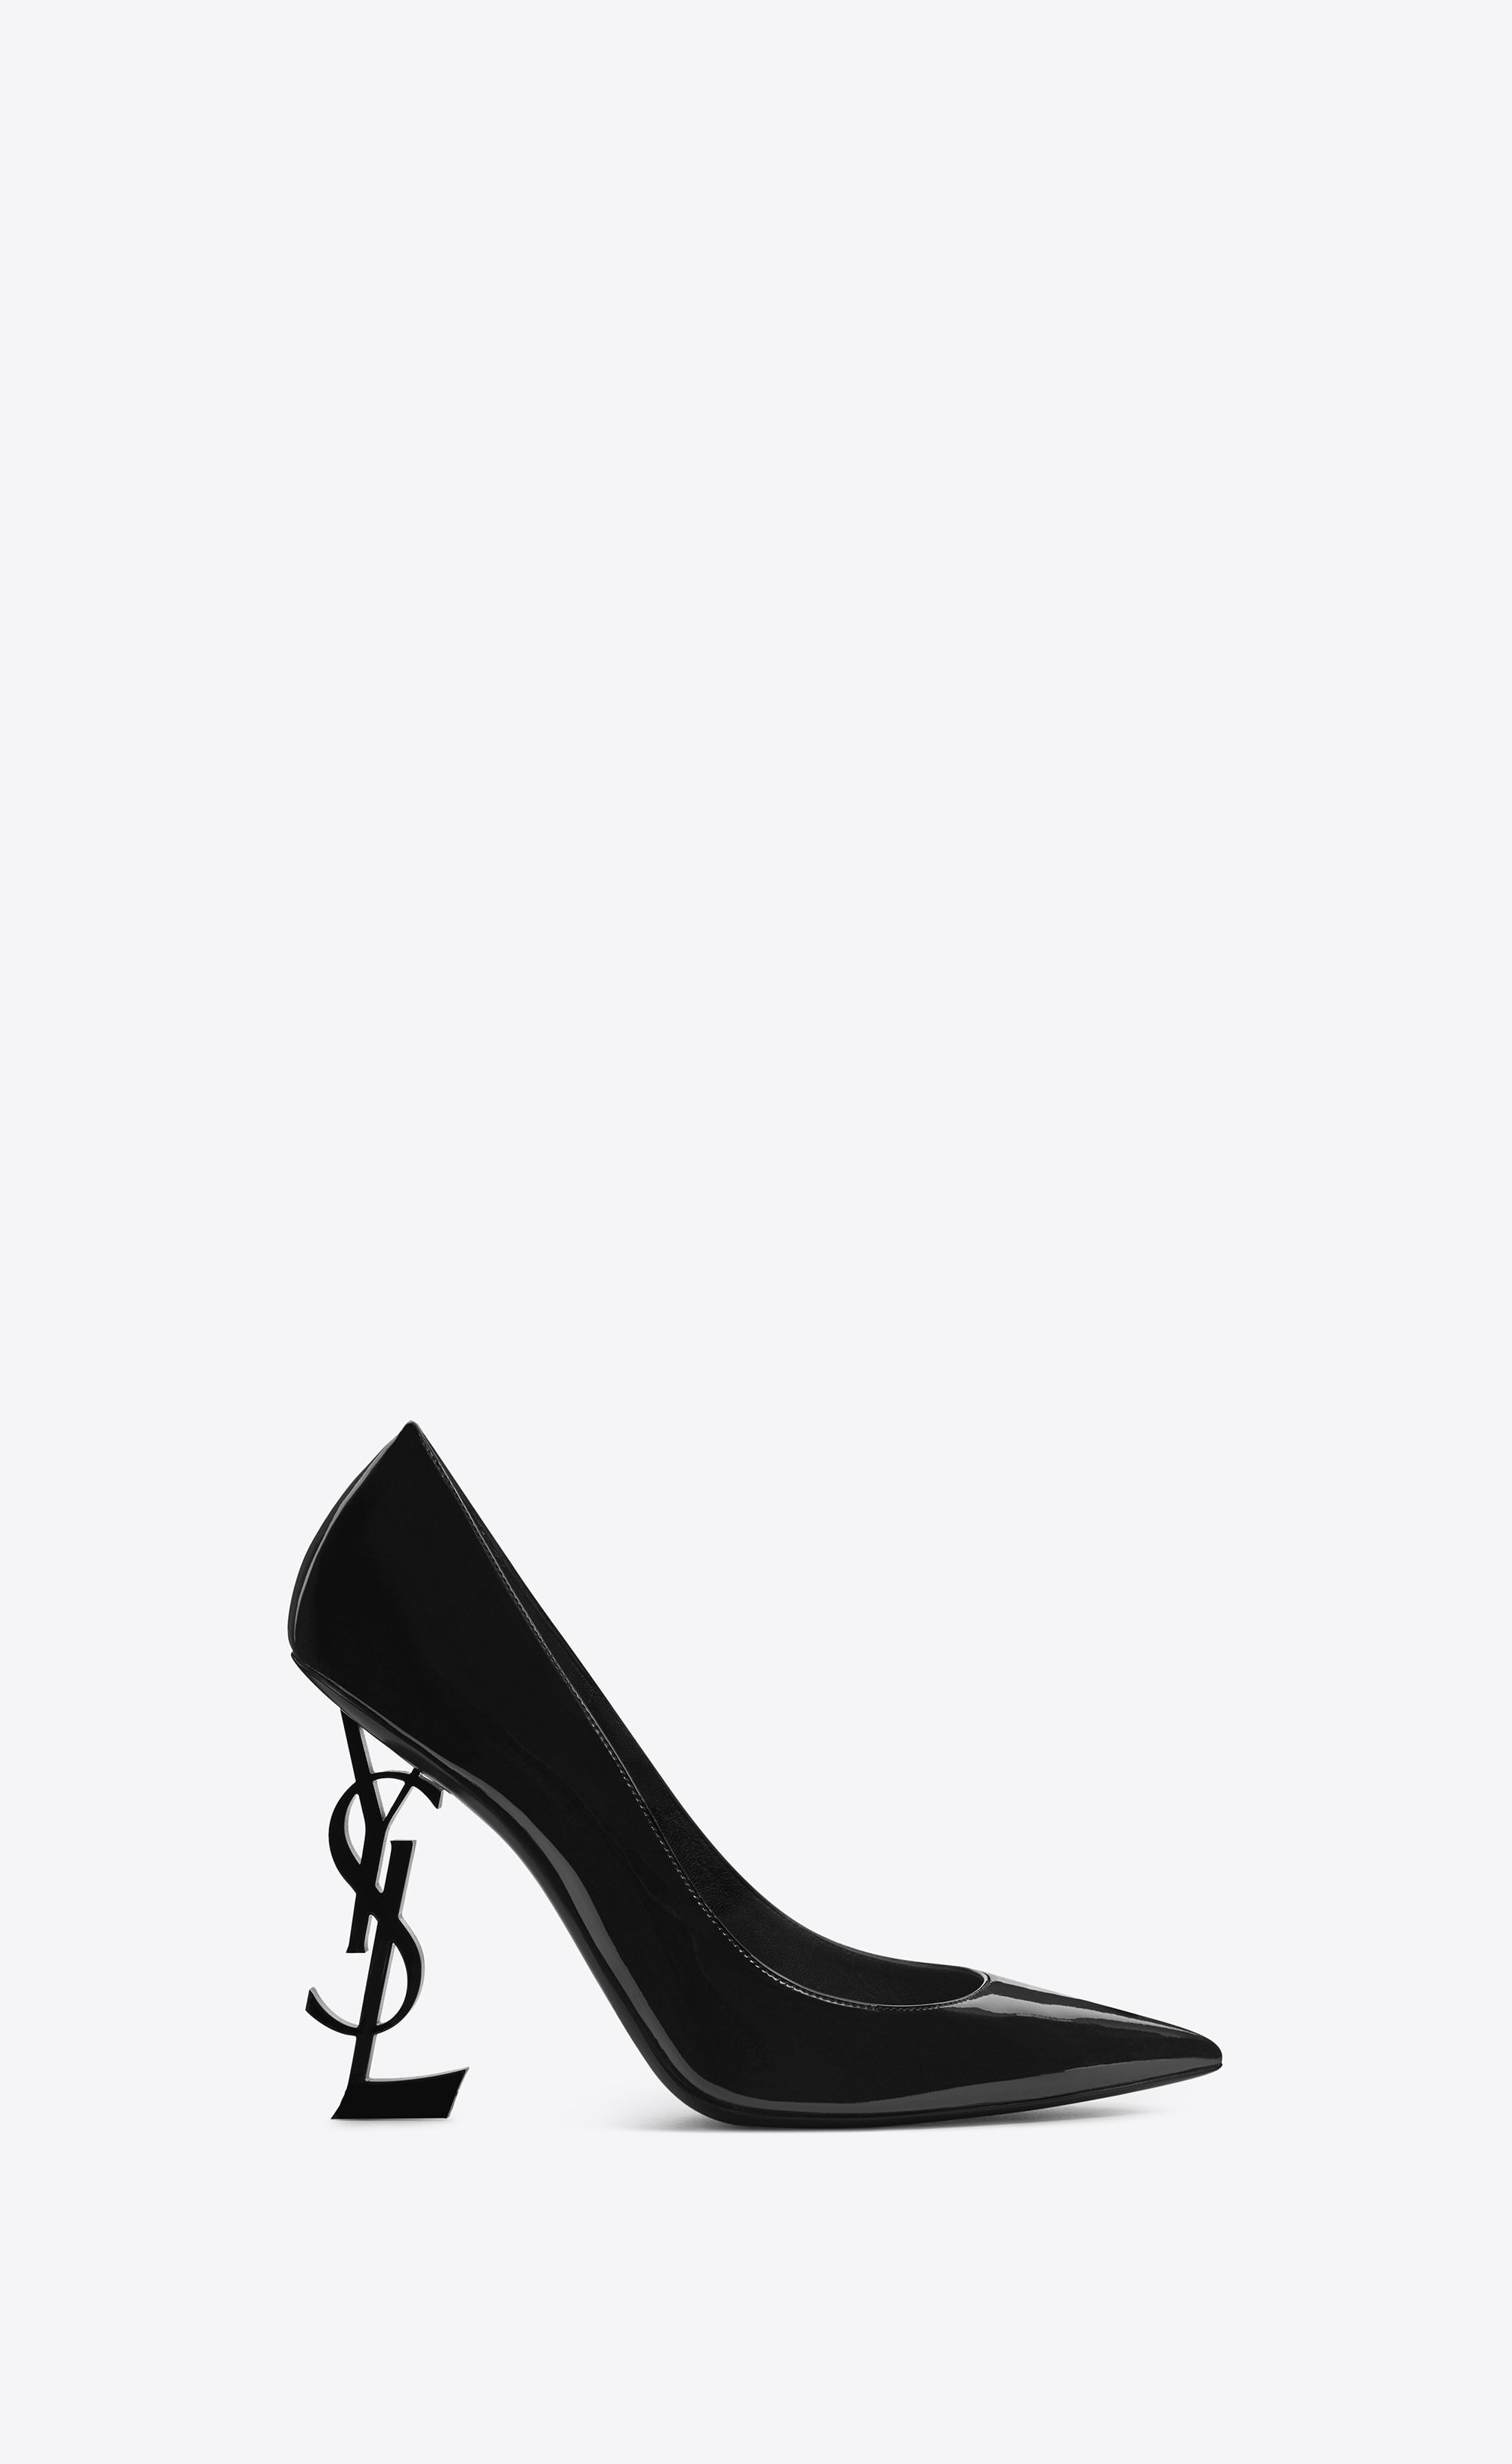 335be71006f3  Saint Laurent Opyum Pump In Patent Leather With Black Heel